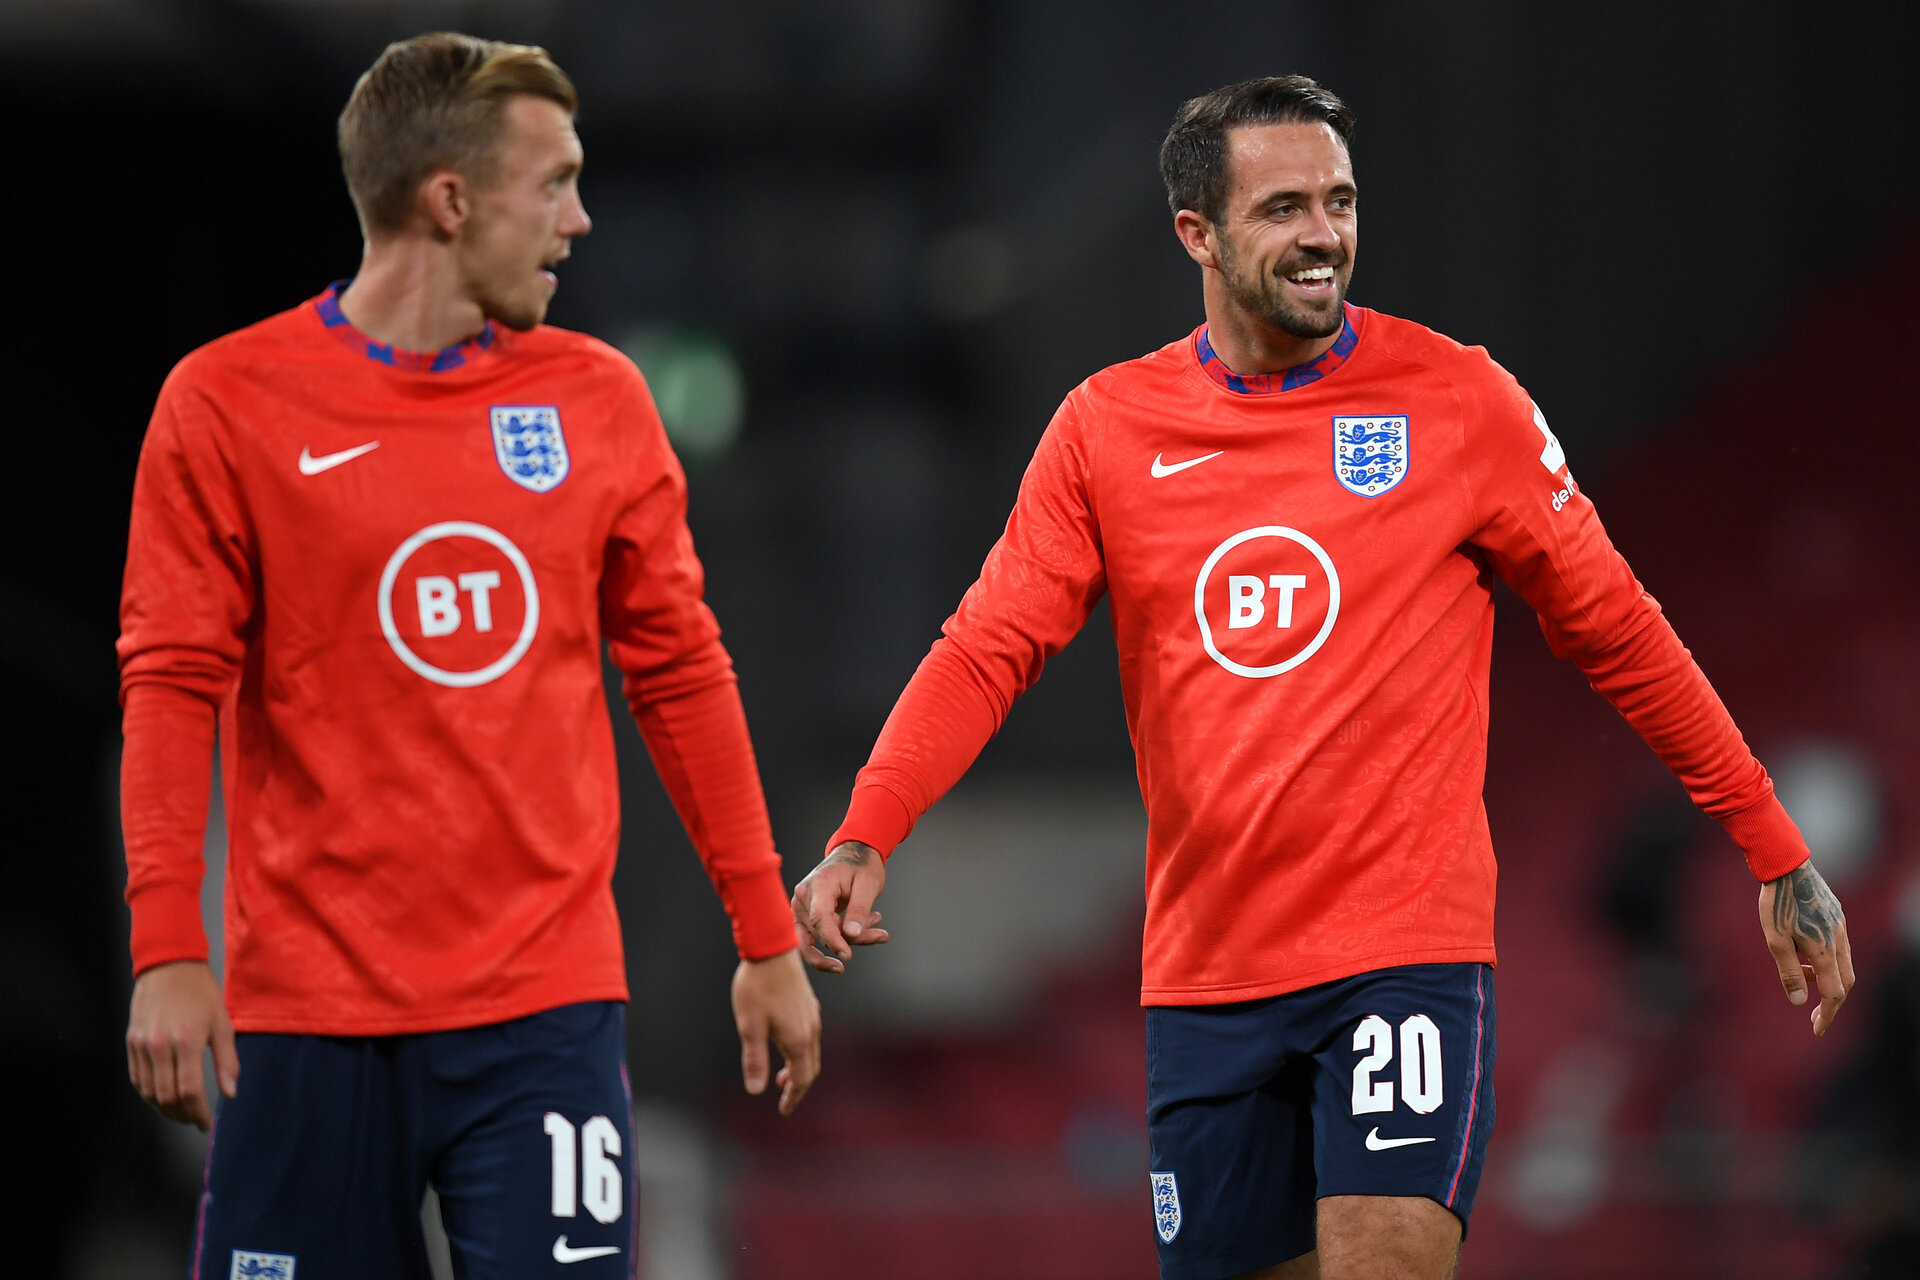 COPENHAGEN, DENMARK - SEPTEMBER 08: Danny Ings of England (R) laughs during warm ups prior to the UEFA Nations League group stage match between Denmark and England at Parken Stadium on September 08, 2020 in Copenhagen, Denmark. (Photo by Michael Regan/Getty Images)